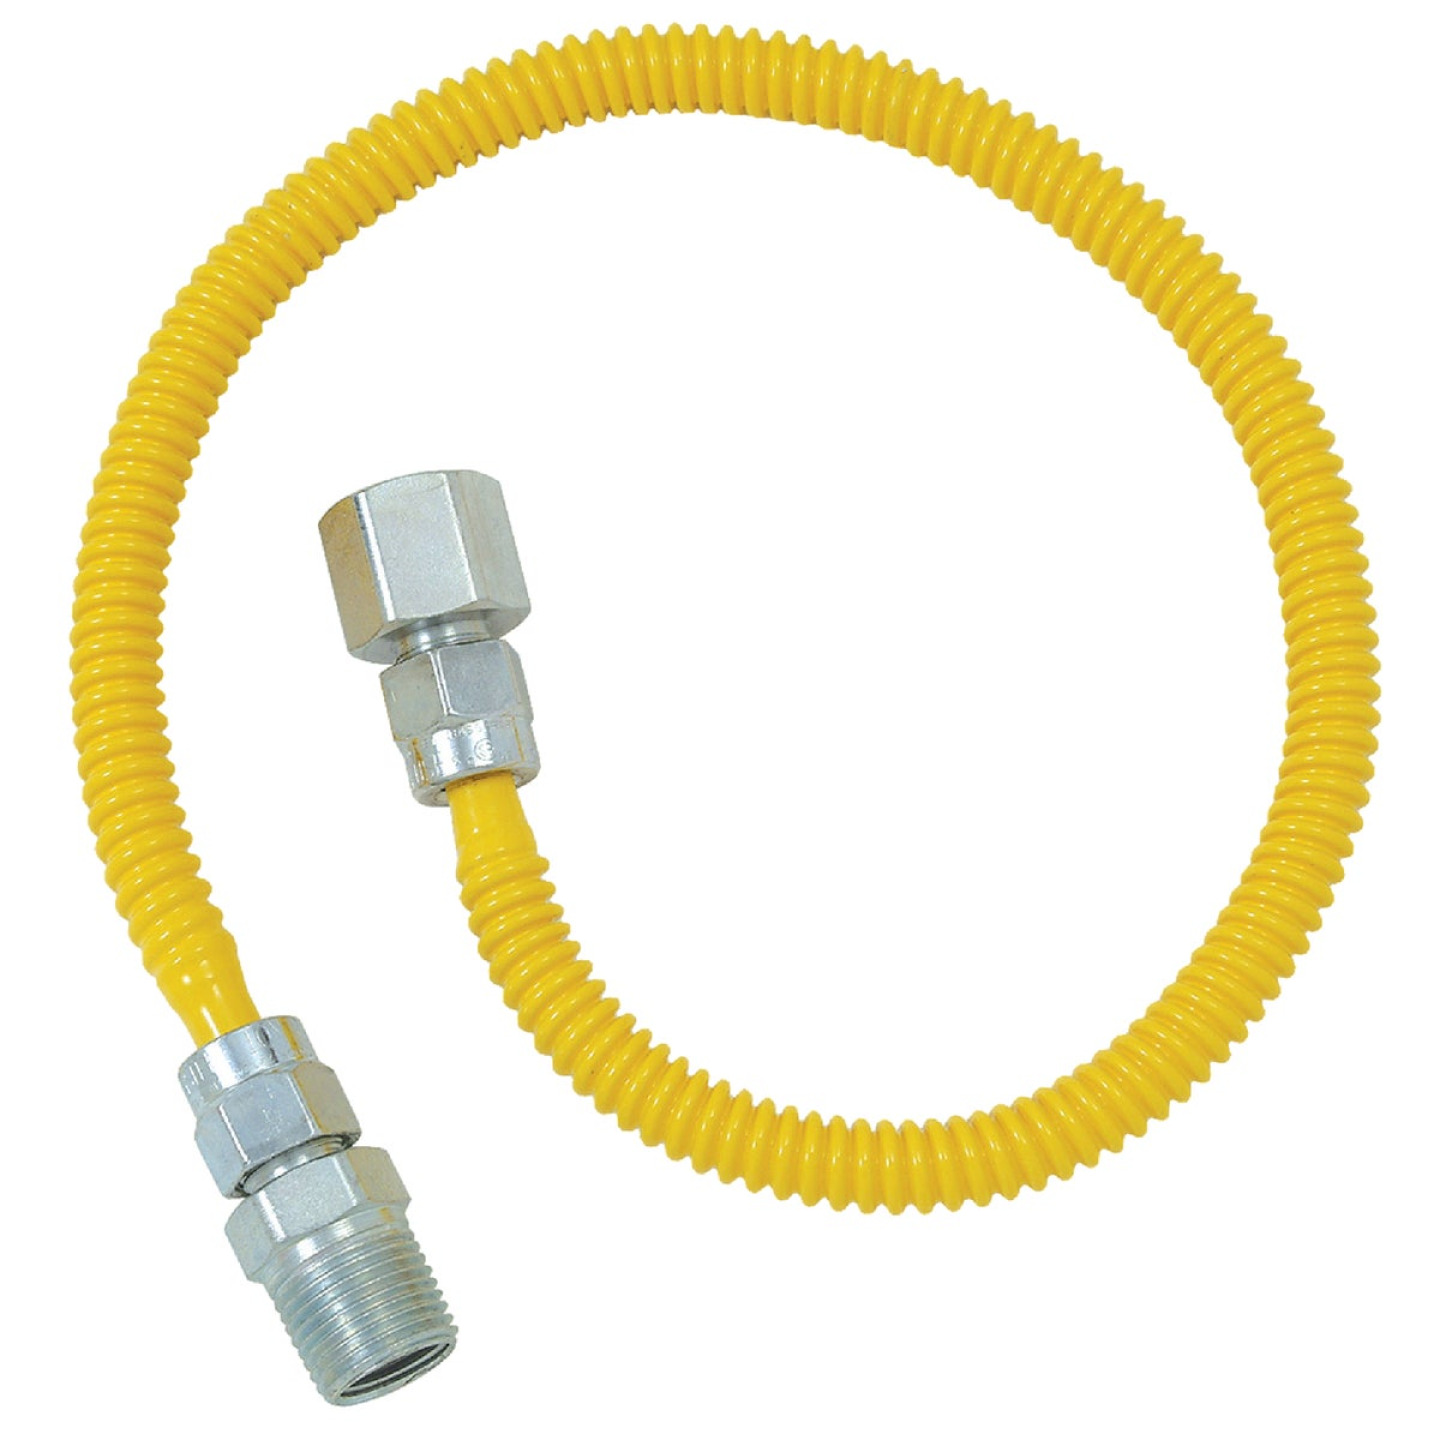 Dormont 3/8 In. OD x 18 In. Coated Stainless Steel Gas Connector, 1/2 In. FIP x 1/2 In. MIP (Tapped 3/8 In. FIP) Image 1